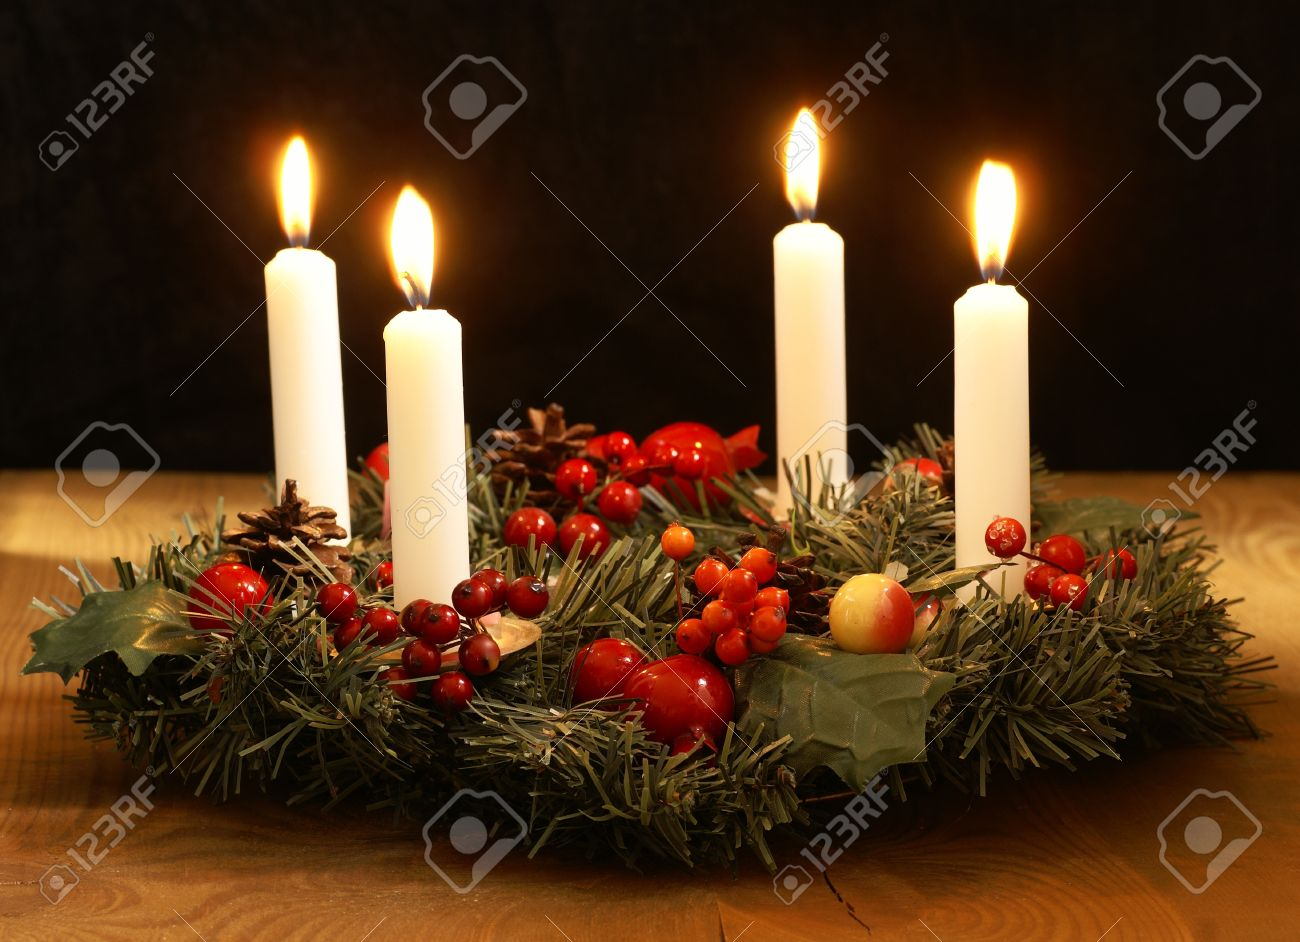 Advent Wreath Decorations Advent Wreath Stock Photos Images Royalty Free Advent Wreath